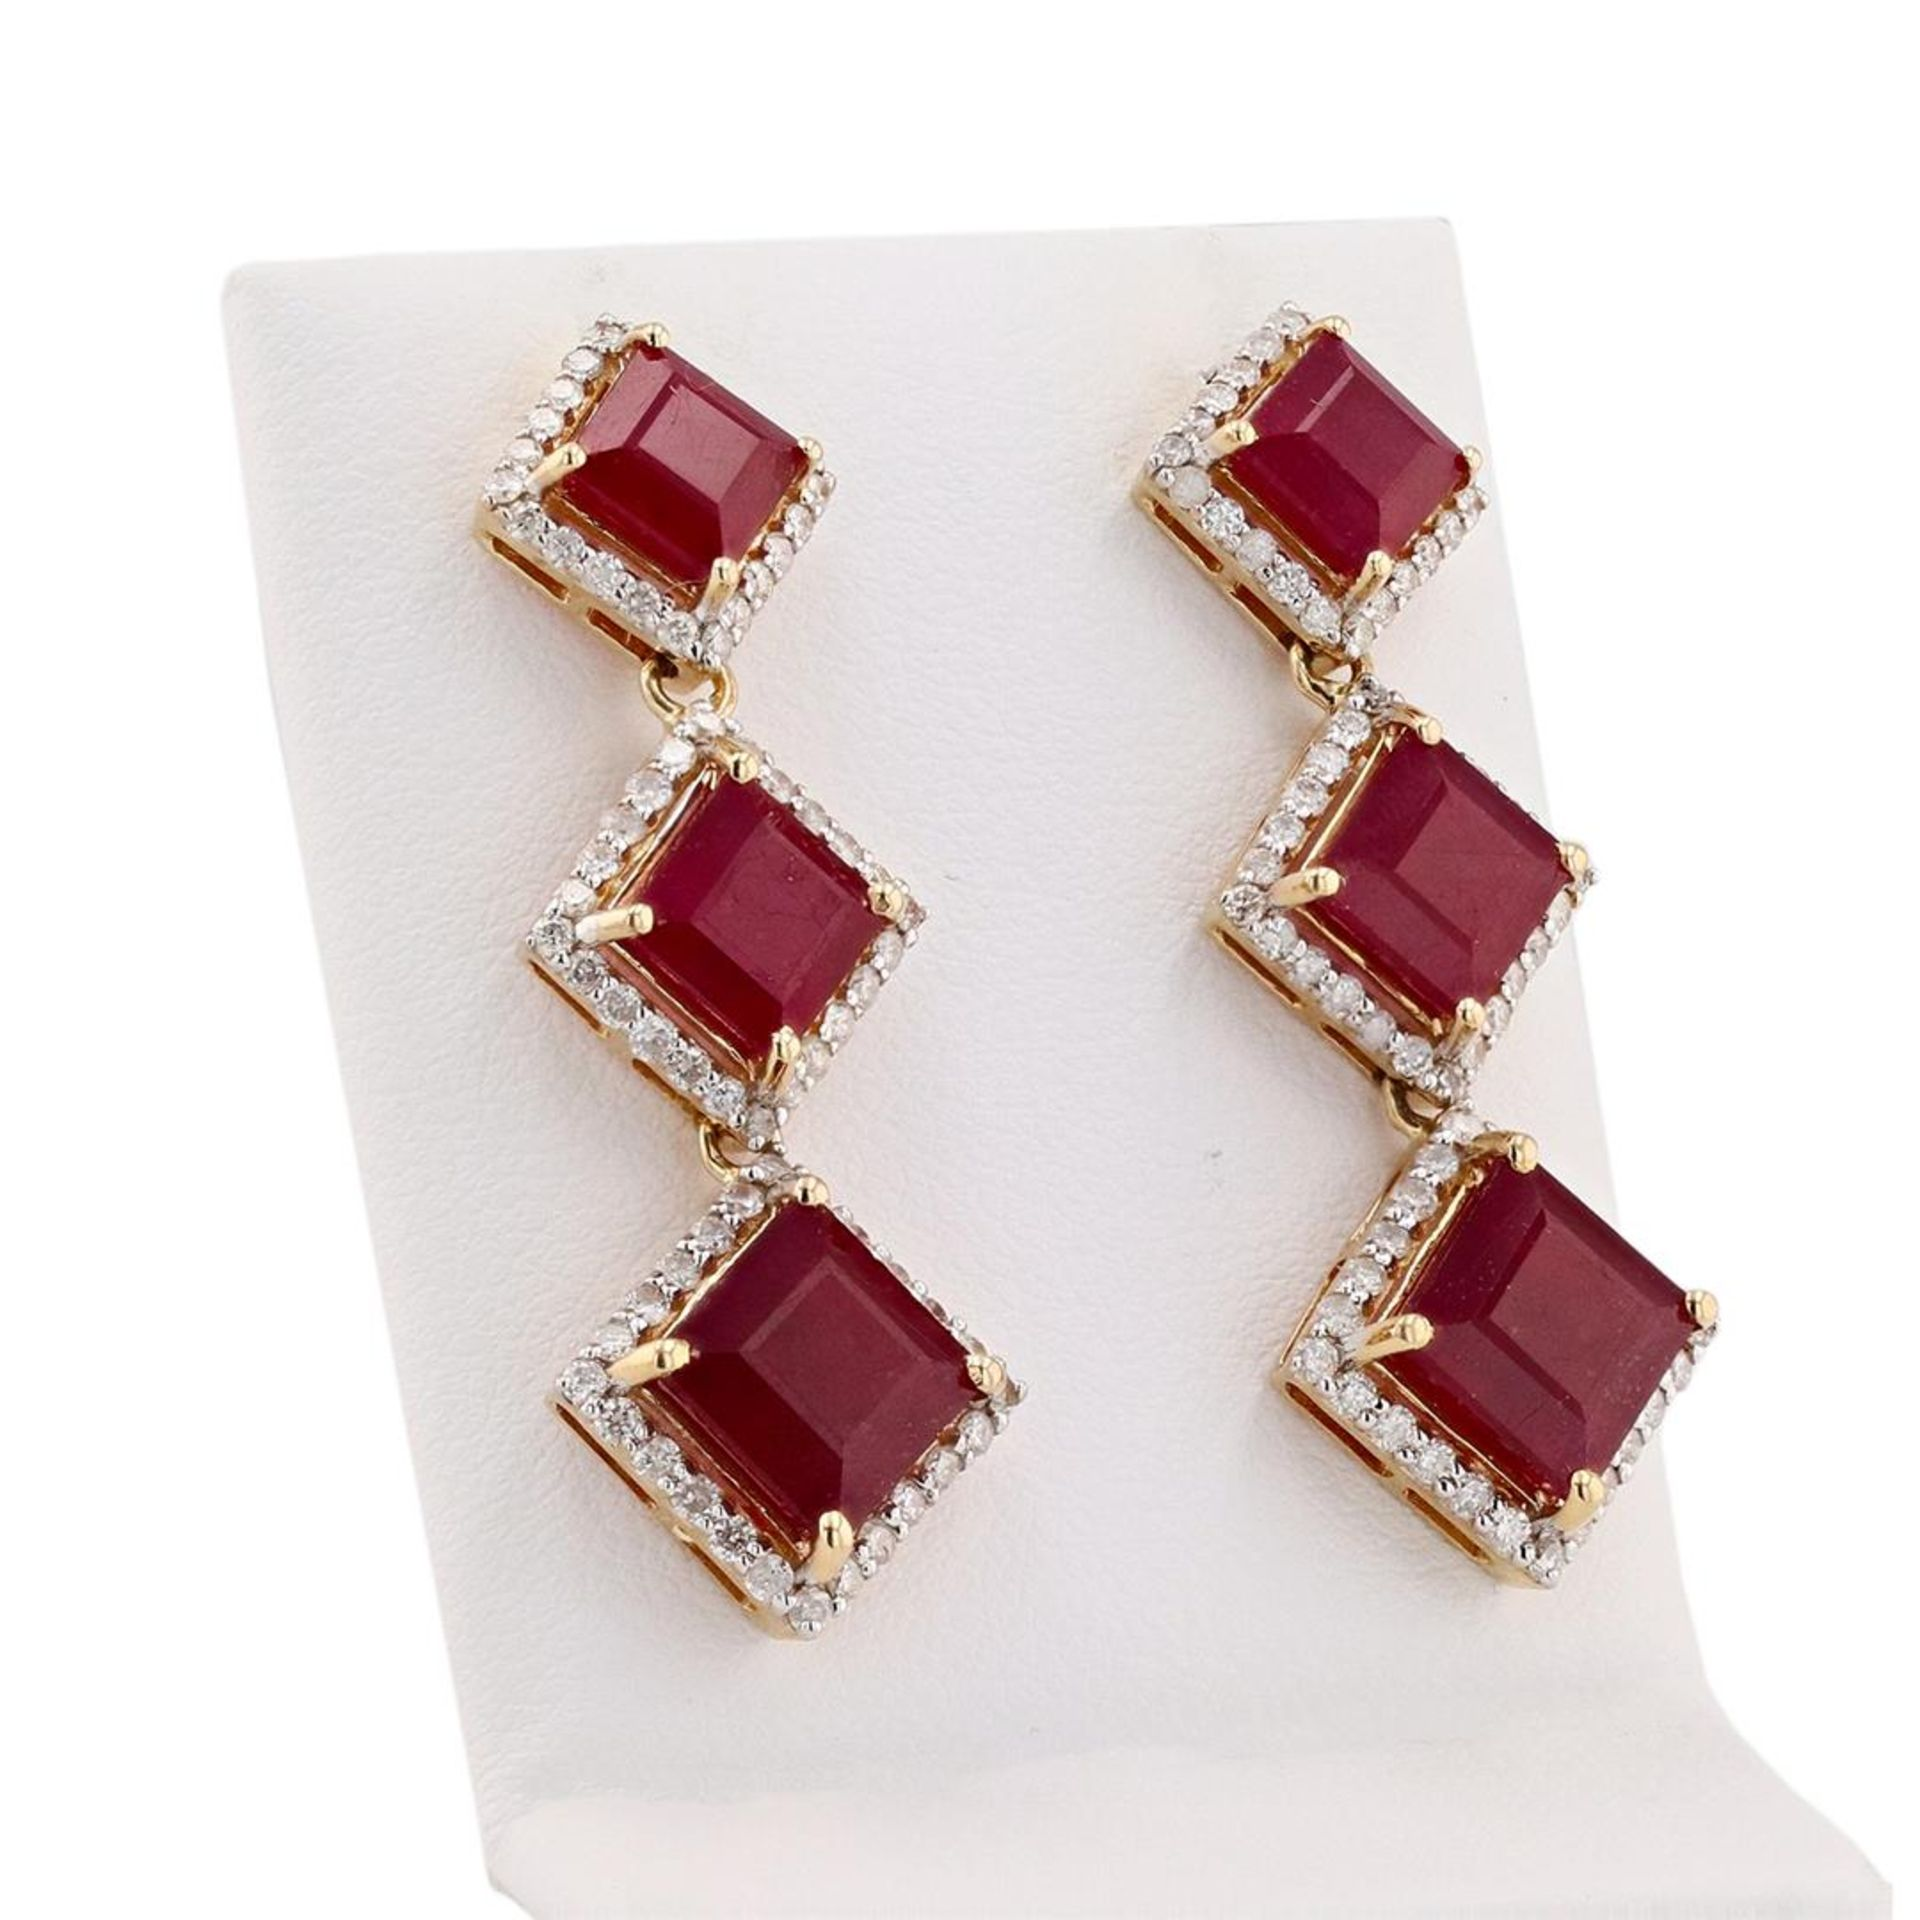 16.77 ctw Ruby and 1.41 ctw Diamond 14K Yellow Gold Earrings - Image 2 of 4